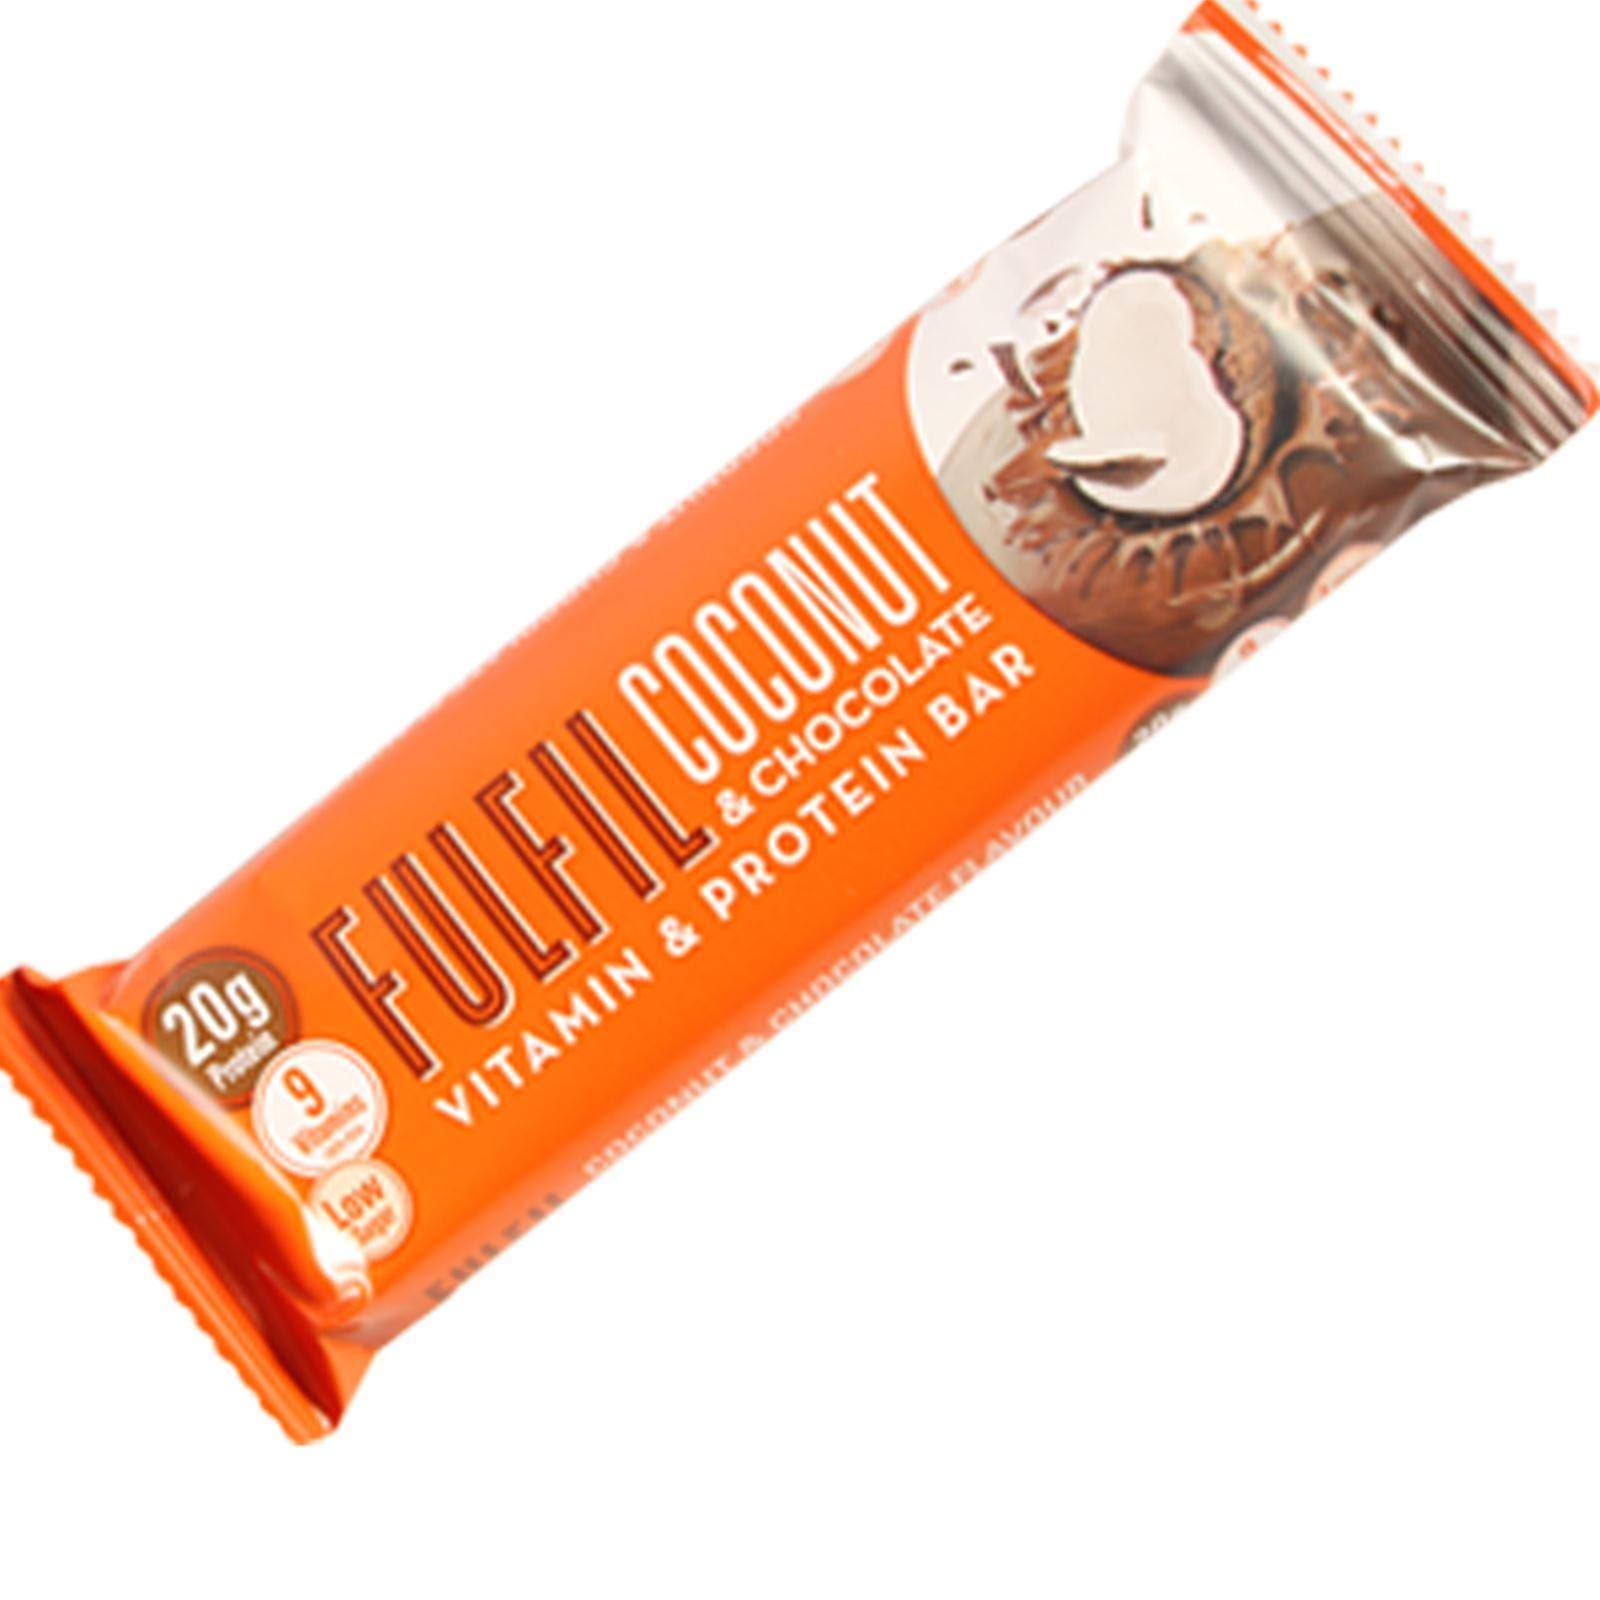 Fulfil Vitamin & Protein Bar - Coconut & Chocolate, 55g